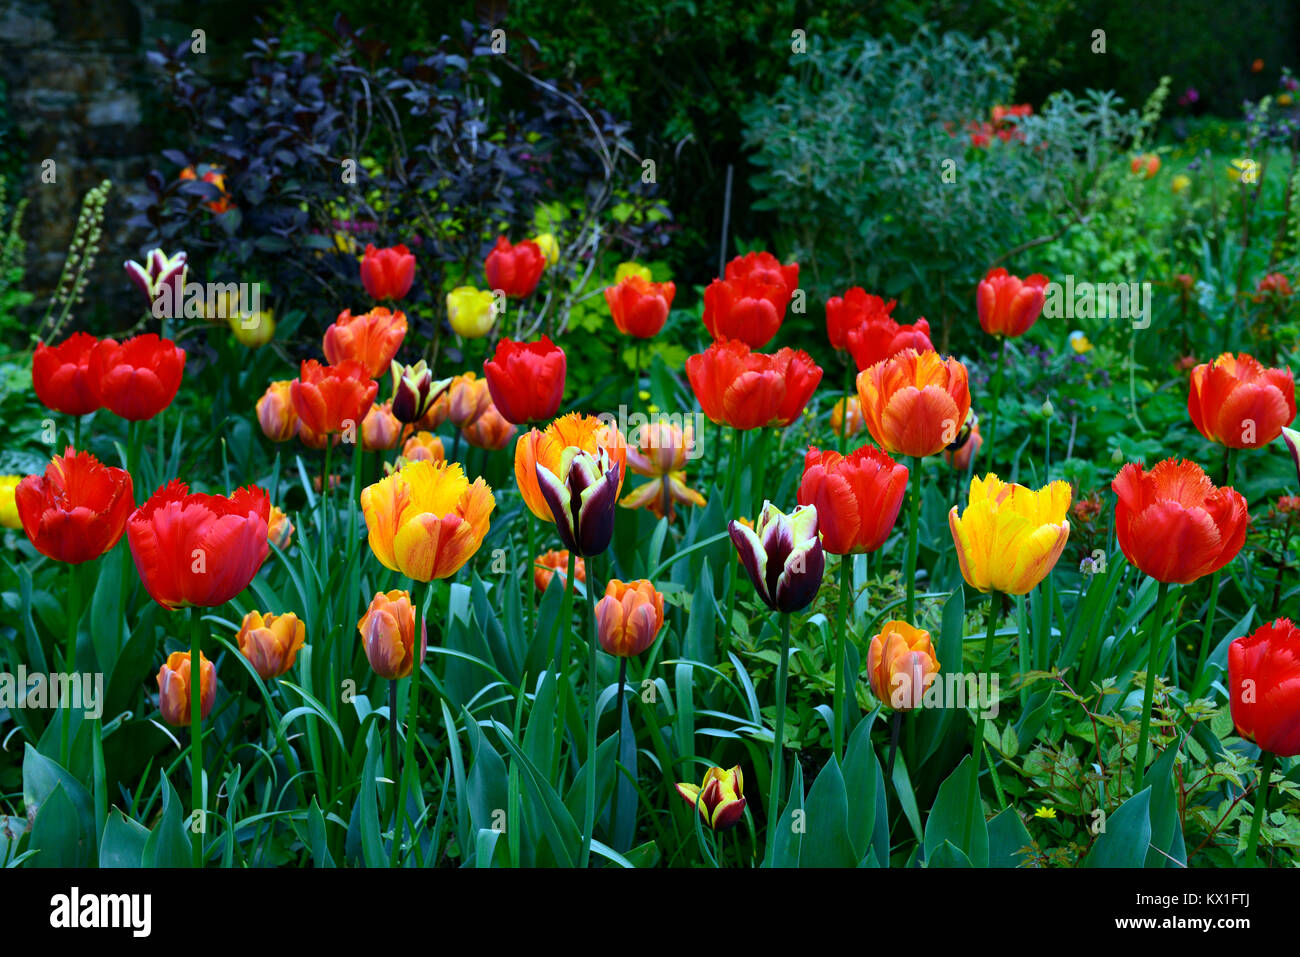 red,yellow,tulips,tulips,mix,mixed,tulipa apeldoorn elite,spring,flowers,flowering,RM Floral - Stock Image